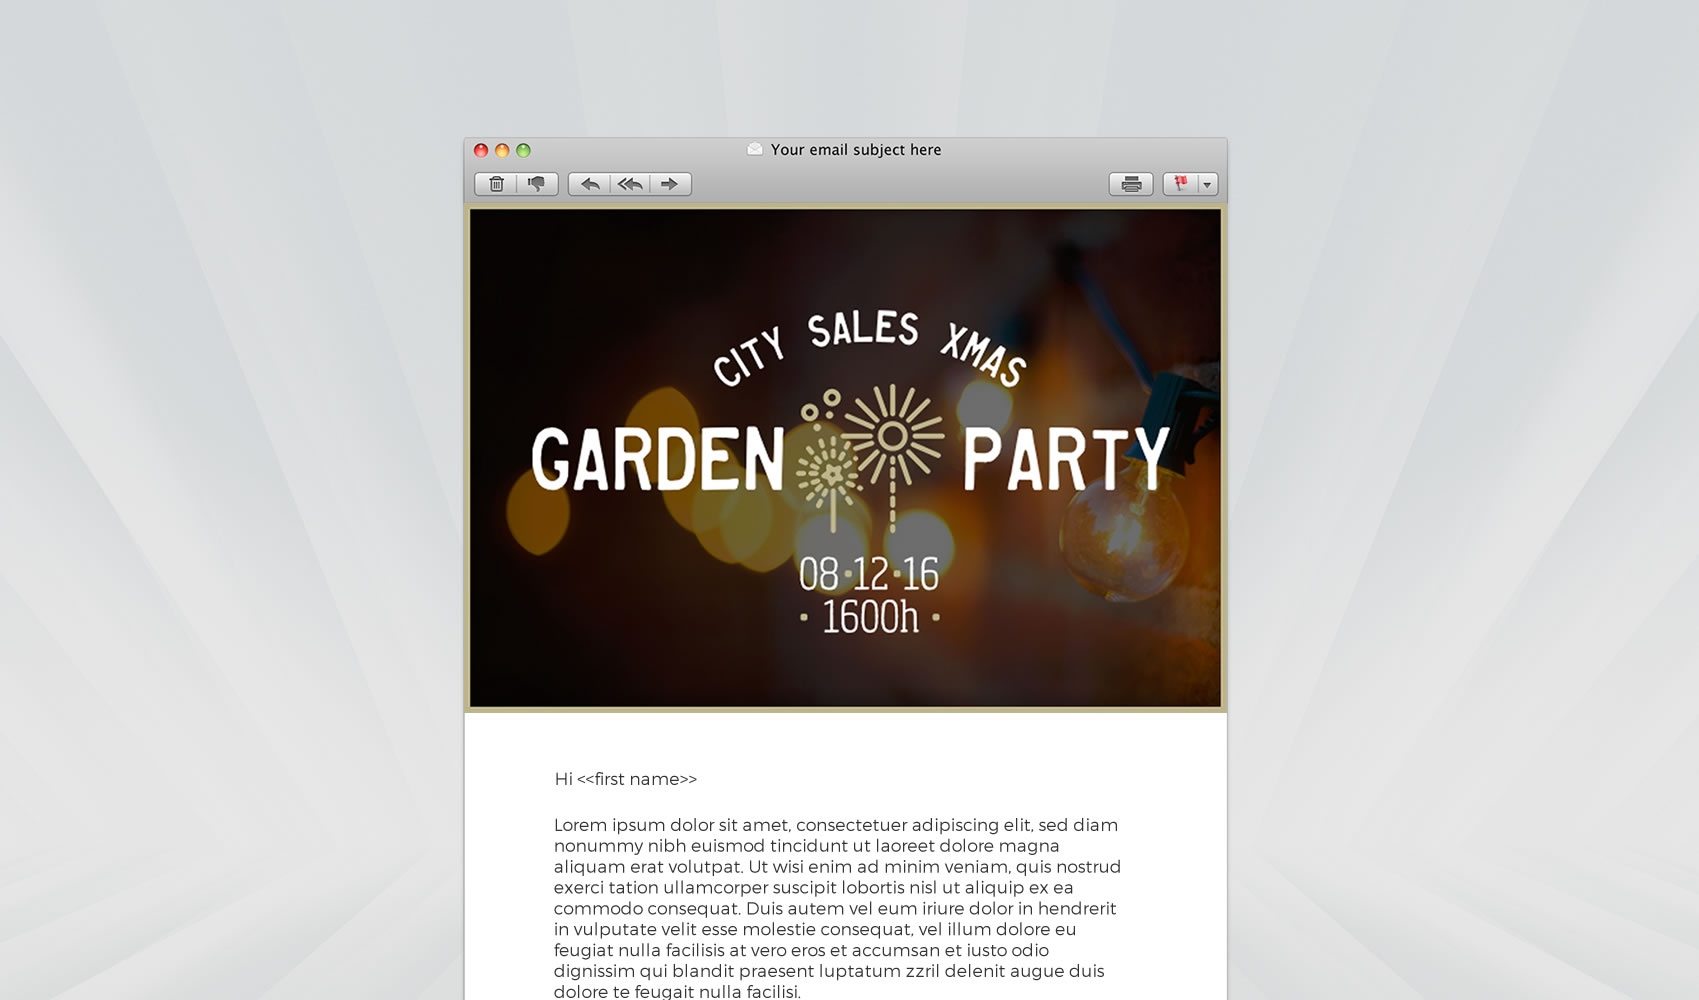 City Sales Ltd. - Designed by Dylan Garrod